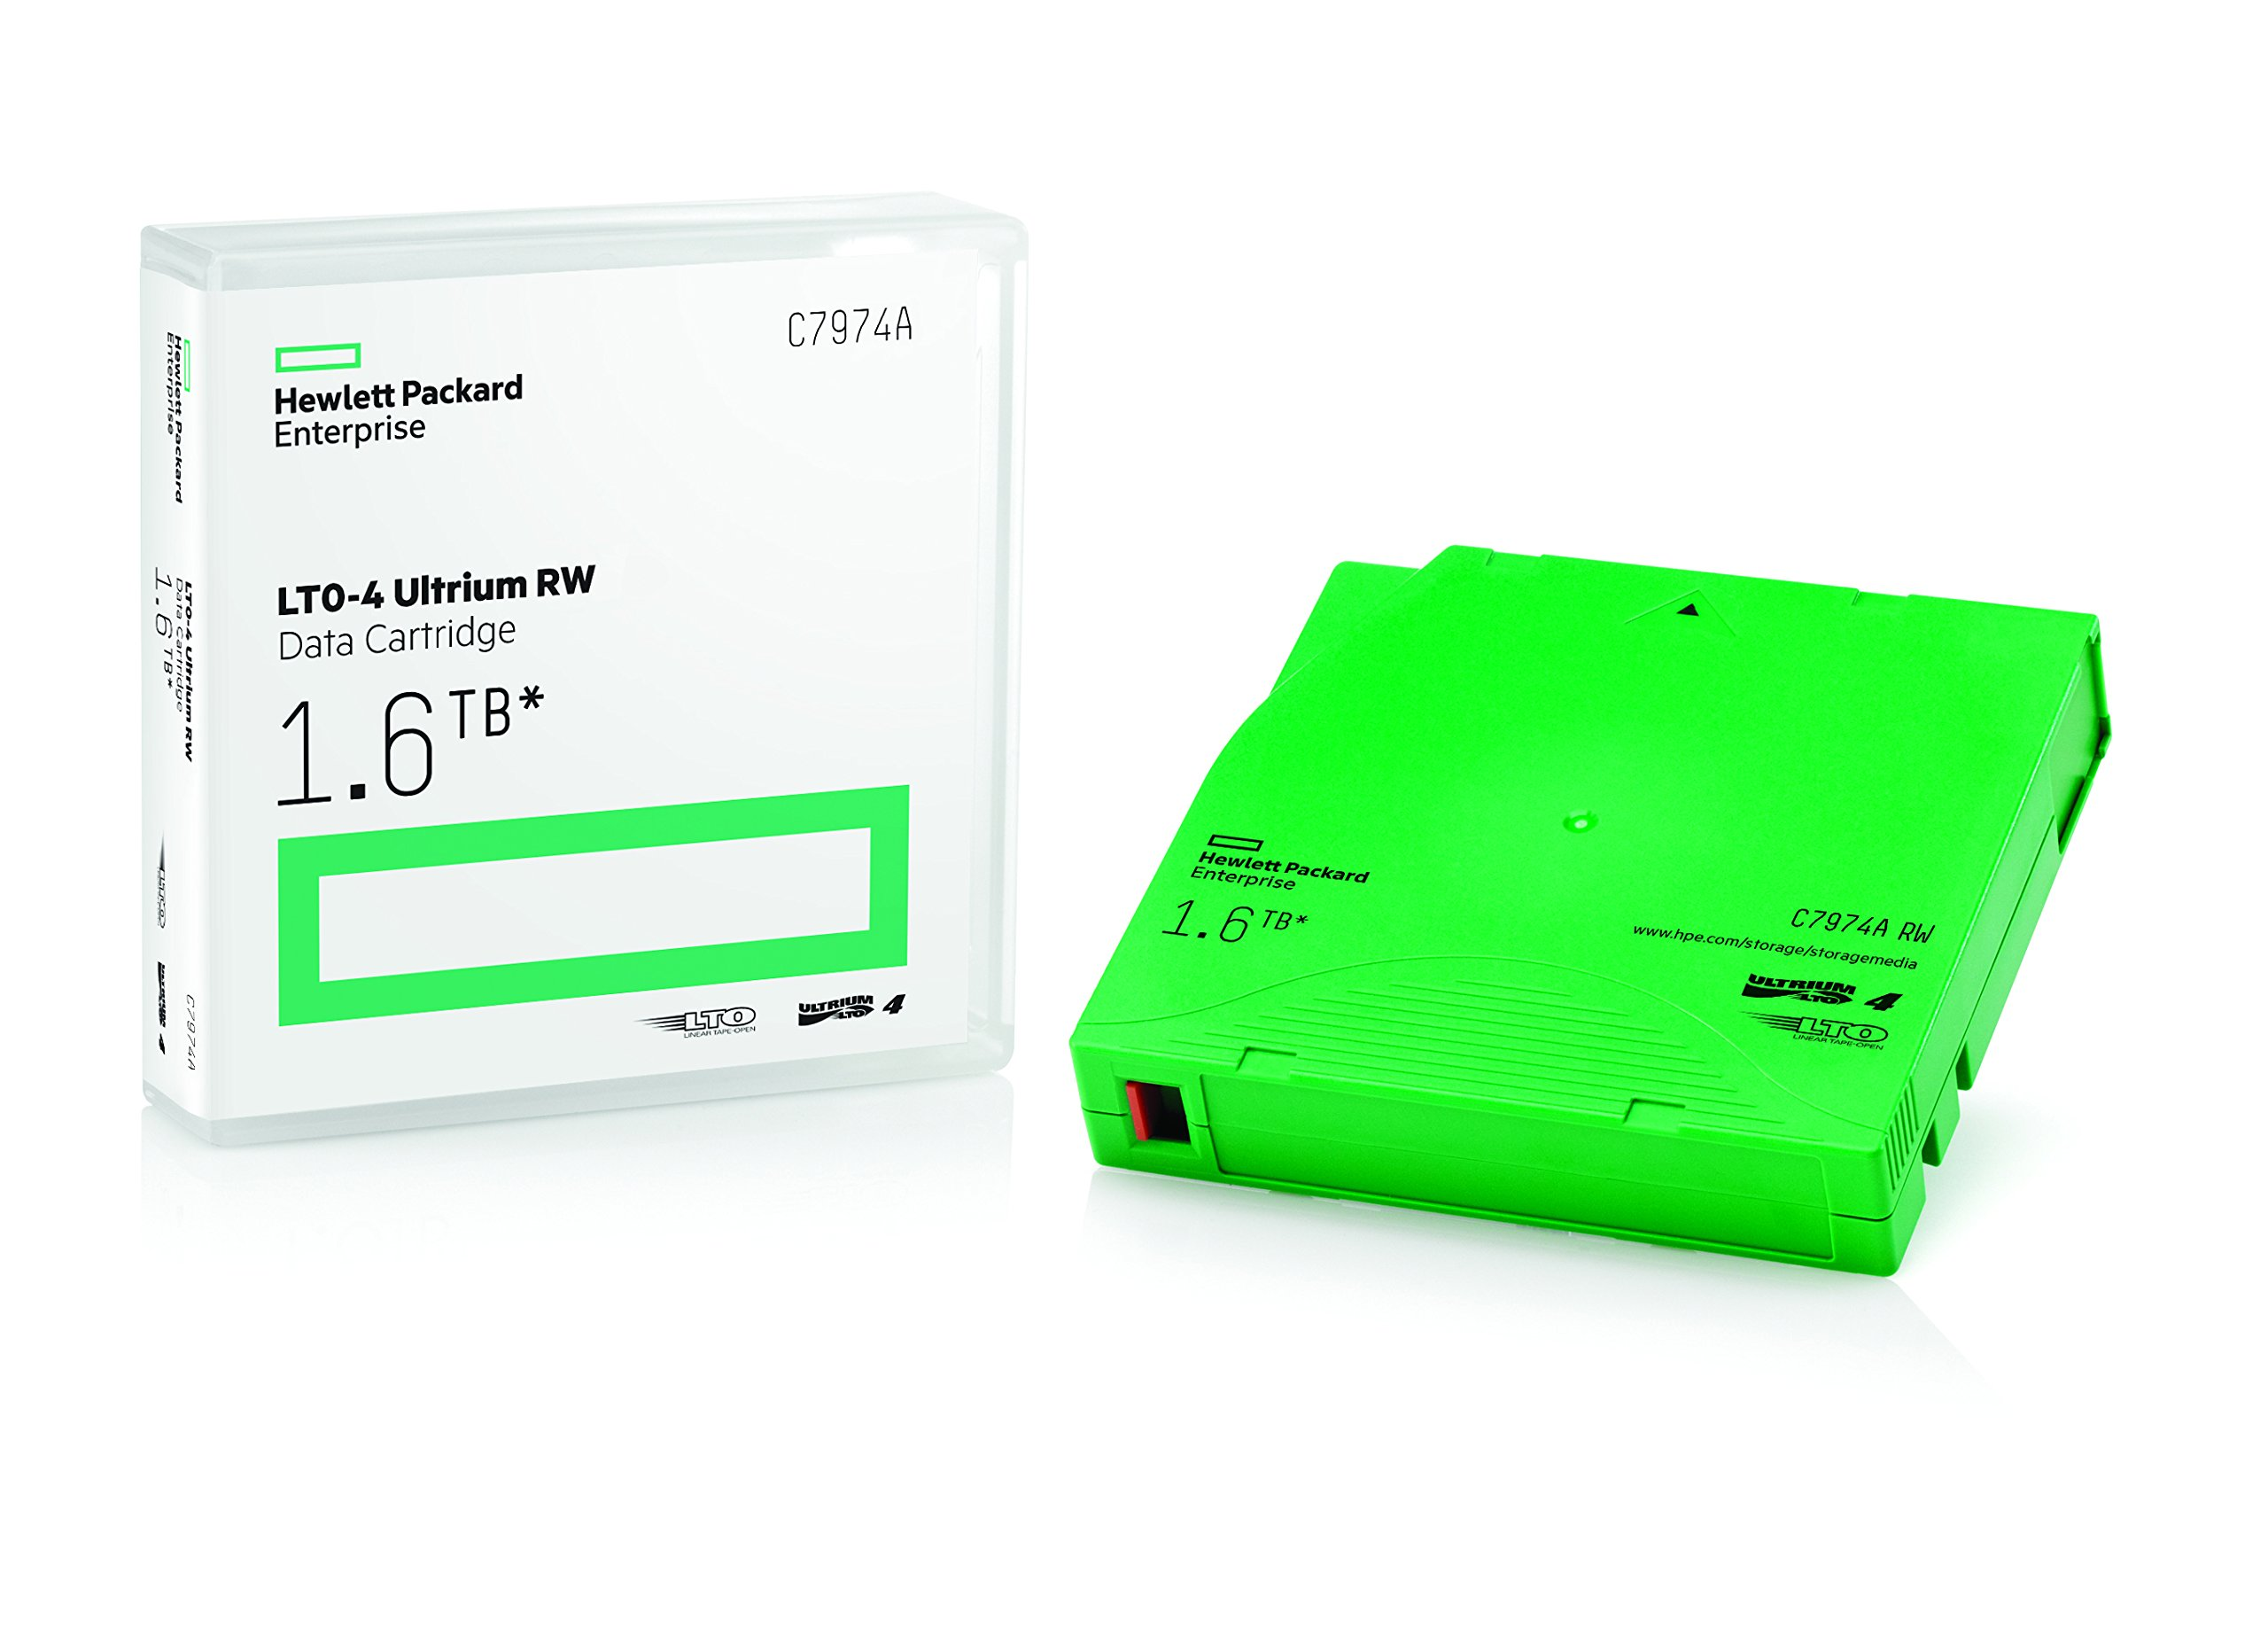 Data Cartridge HP Ultrium LTO-4 1.6TB C7974A (1N4U)